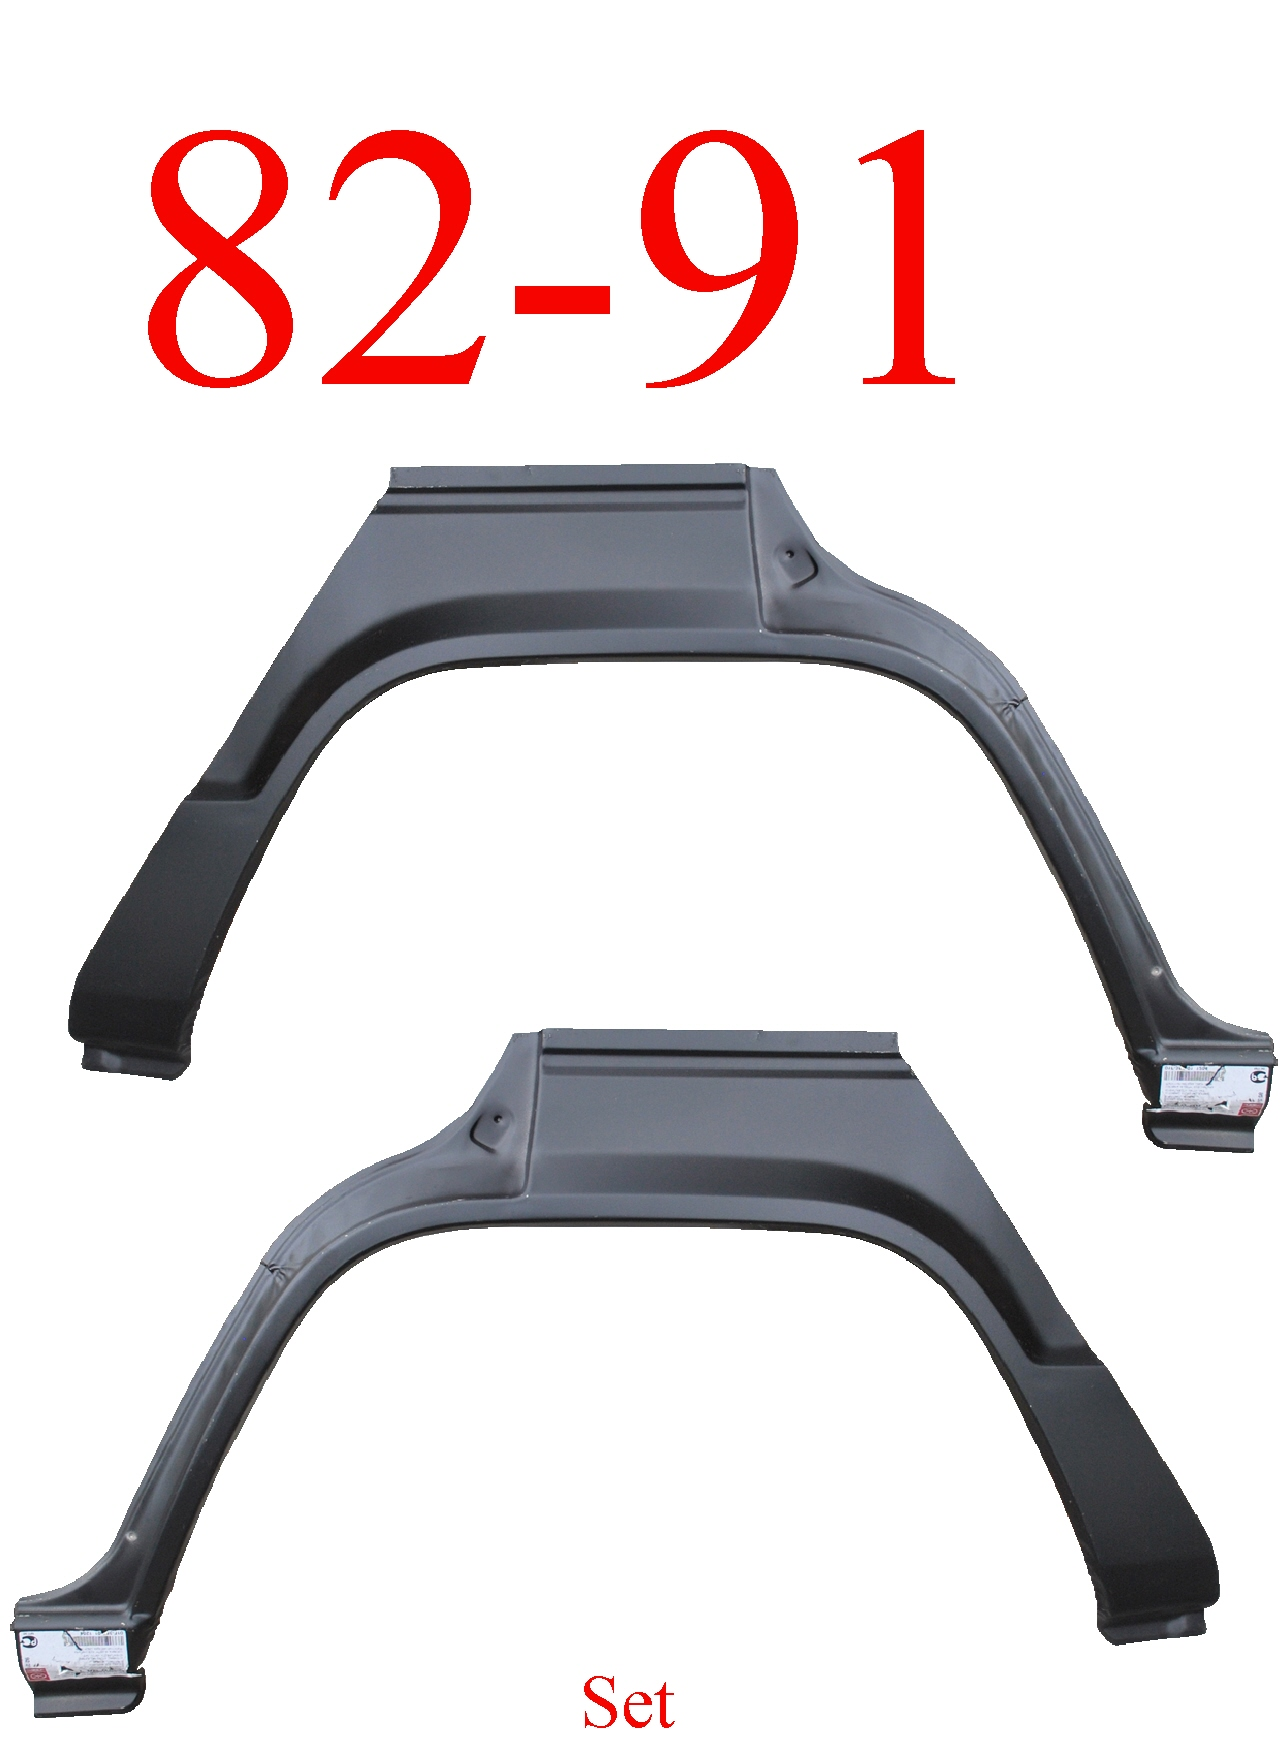 82-91 Mitsubishi Montero 4Dr Rear Upper Arch & Dog Leg Set